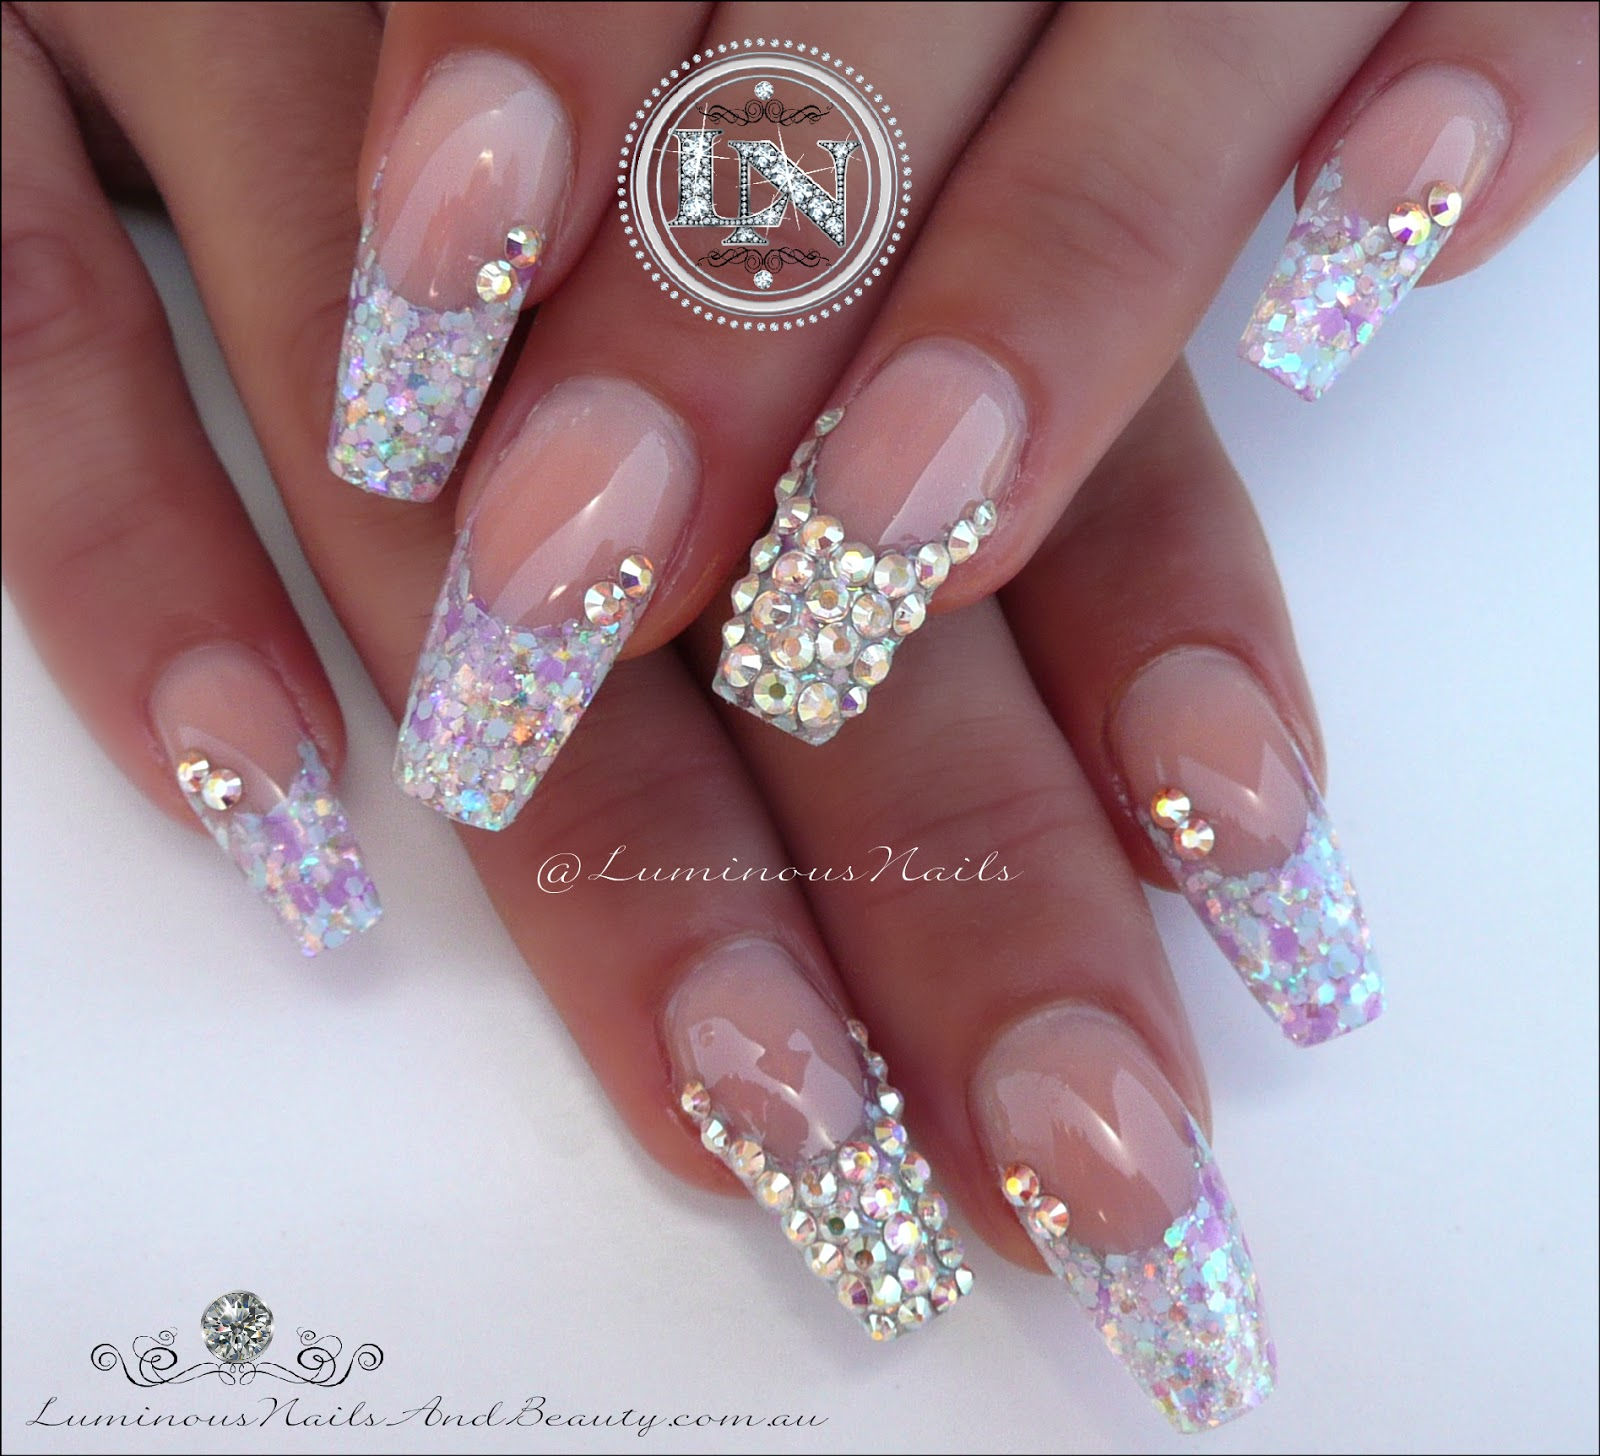 Luminous Nails: Candy Coated Nails with Bling! Acrylic Nails.